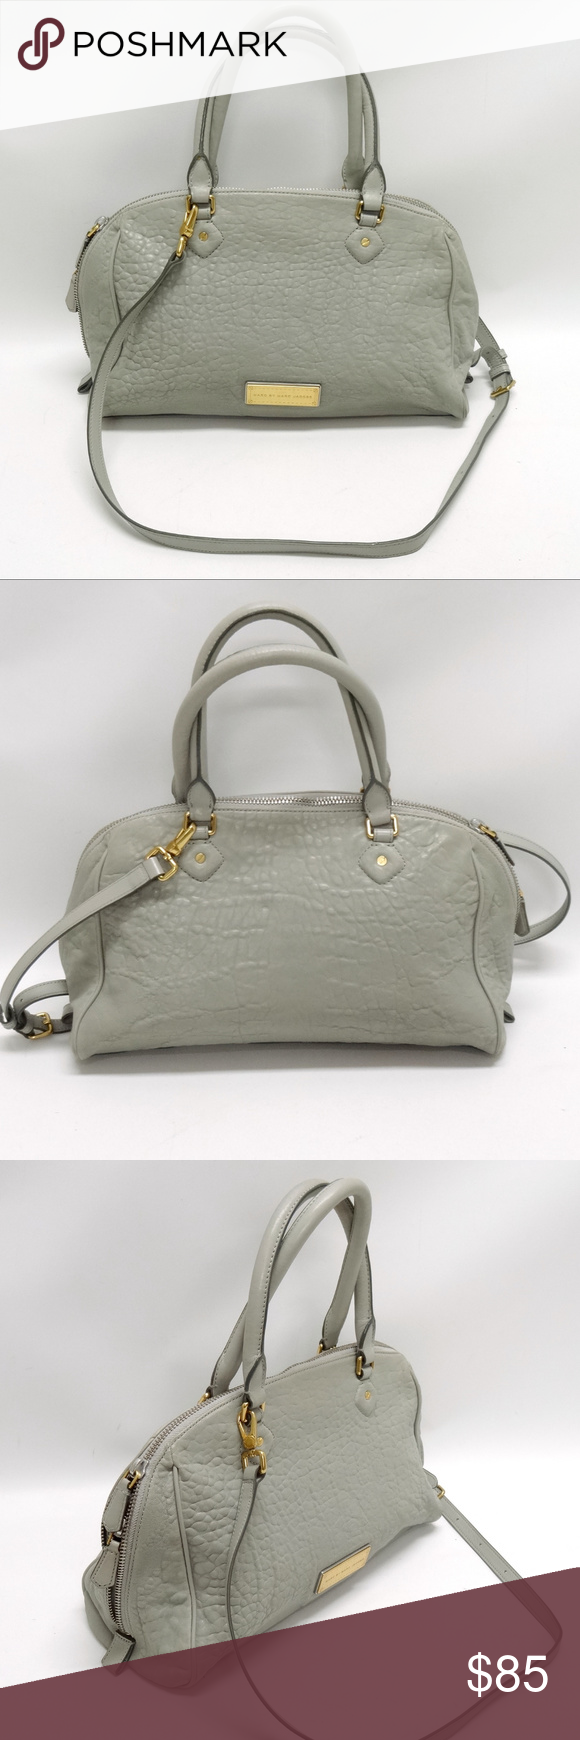 849e5bcd3f79b Marc by Marc Jacobs Gray Pebbled Leather Purse in 2018